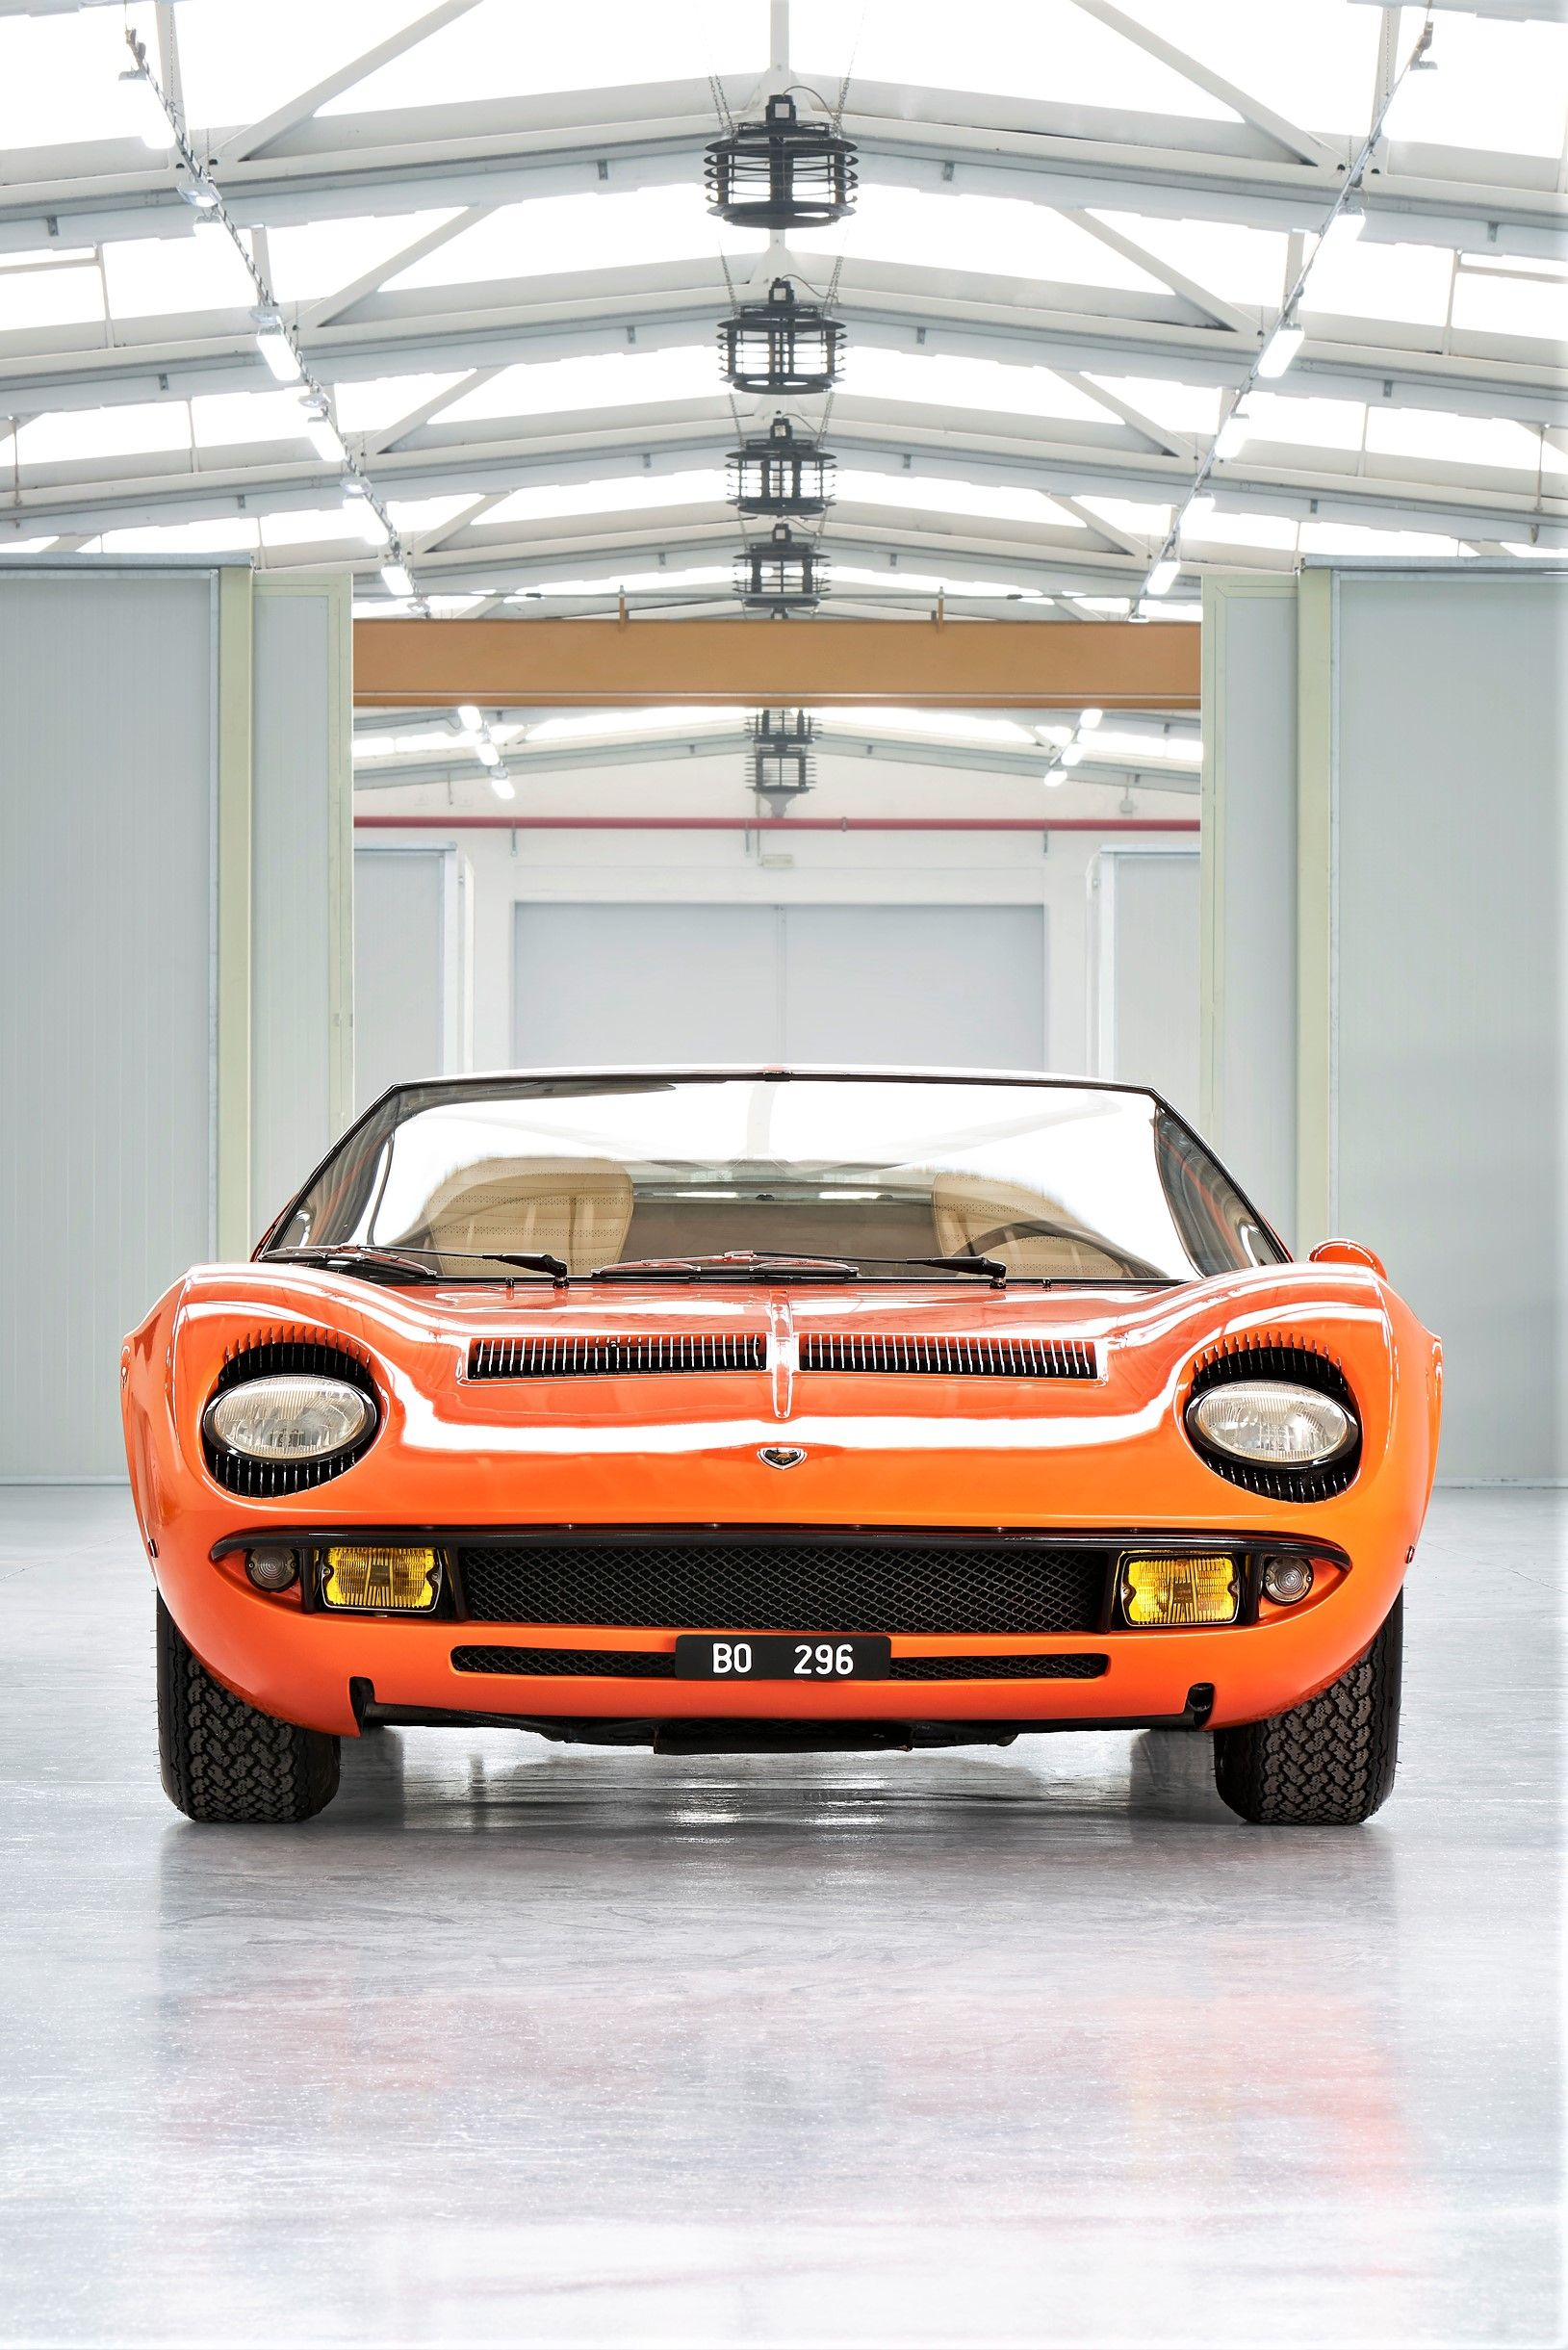 1969 Miura P400 chassis 3586 official car